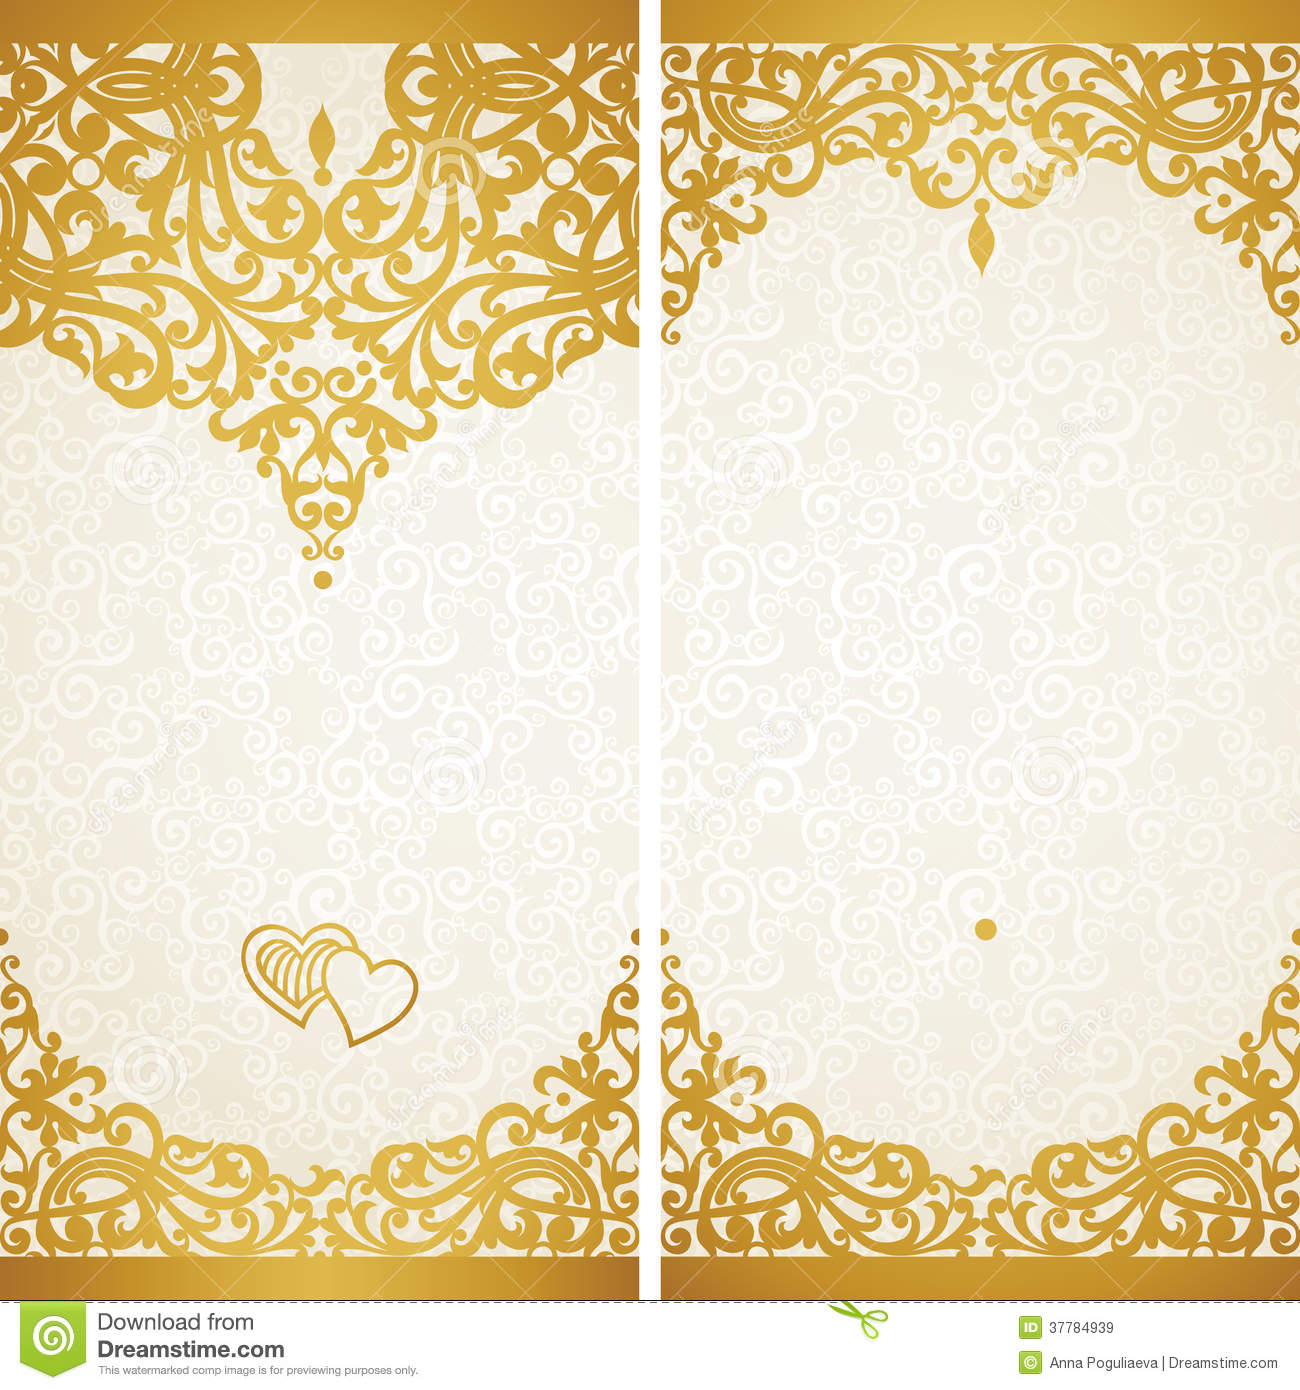 Gold Vintage Border Designs